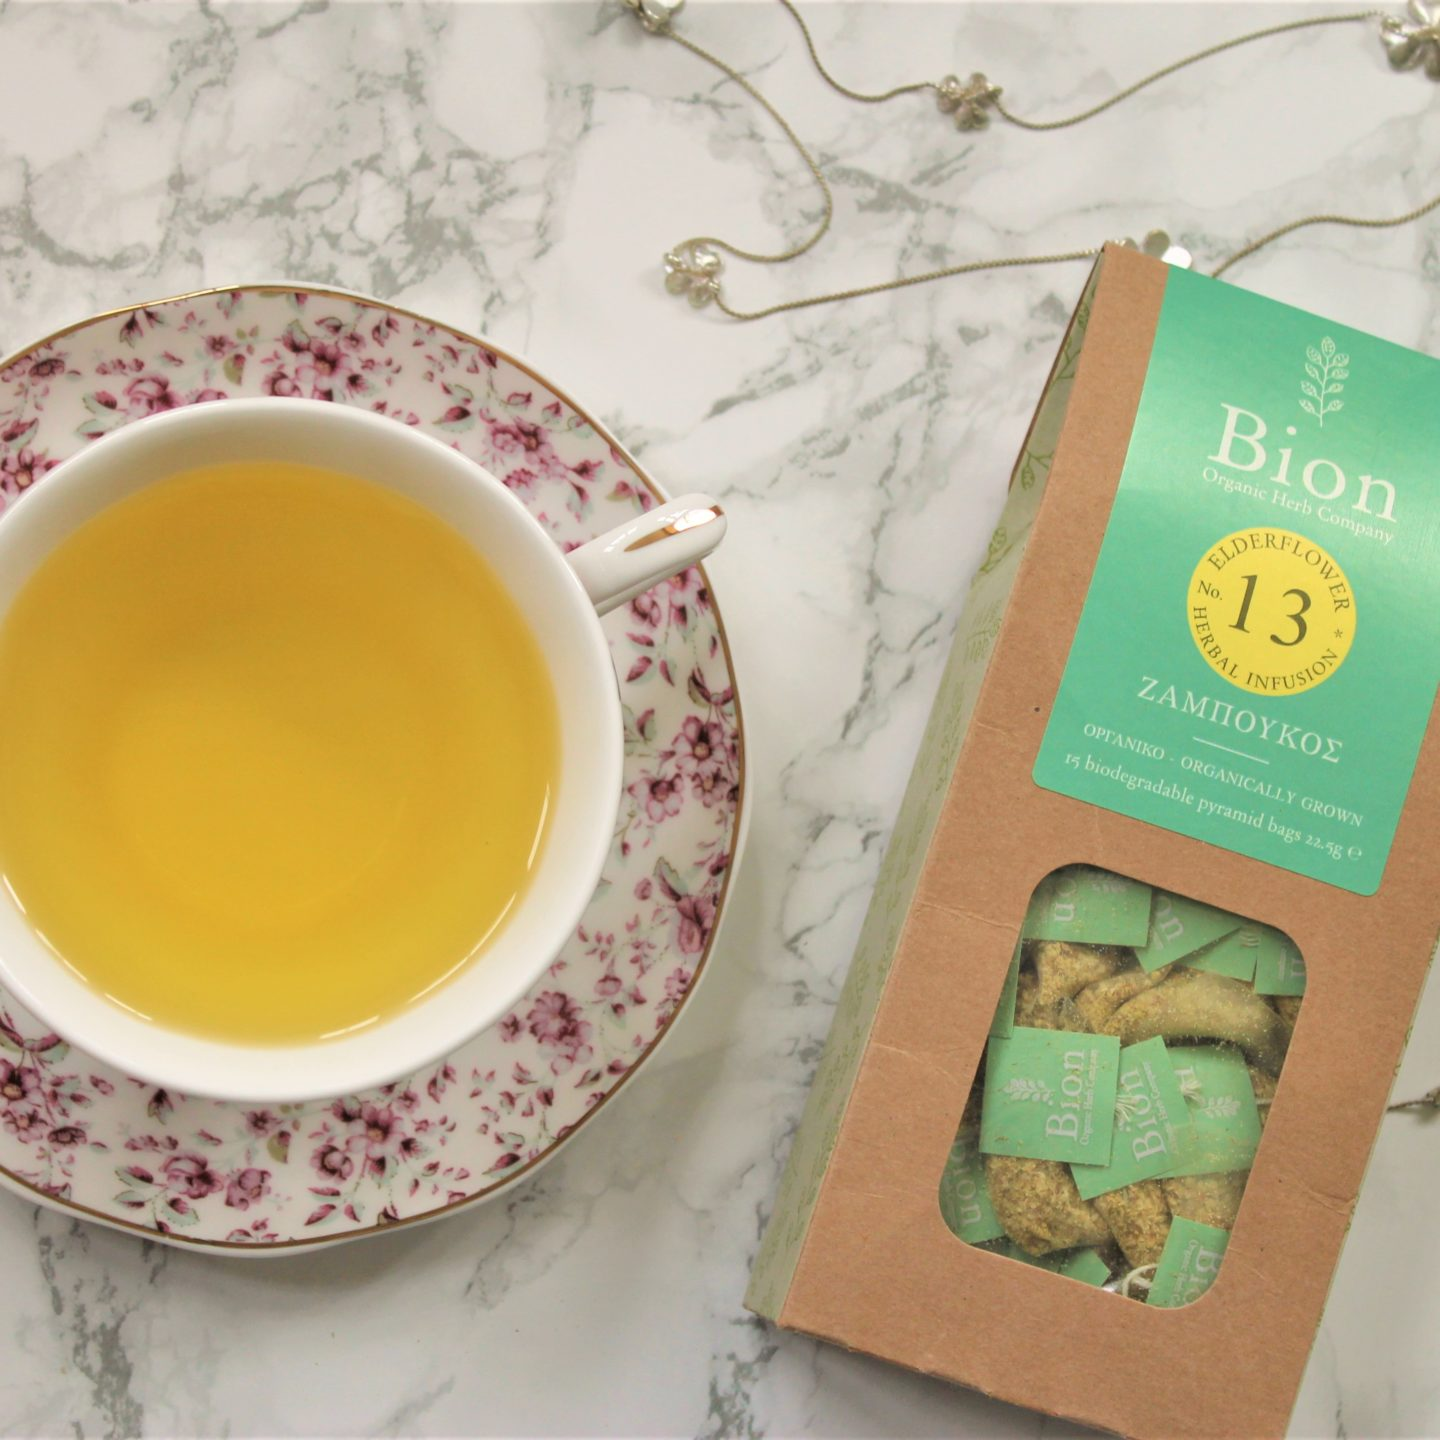 Bion Elderflower Tea Review